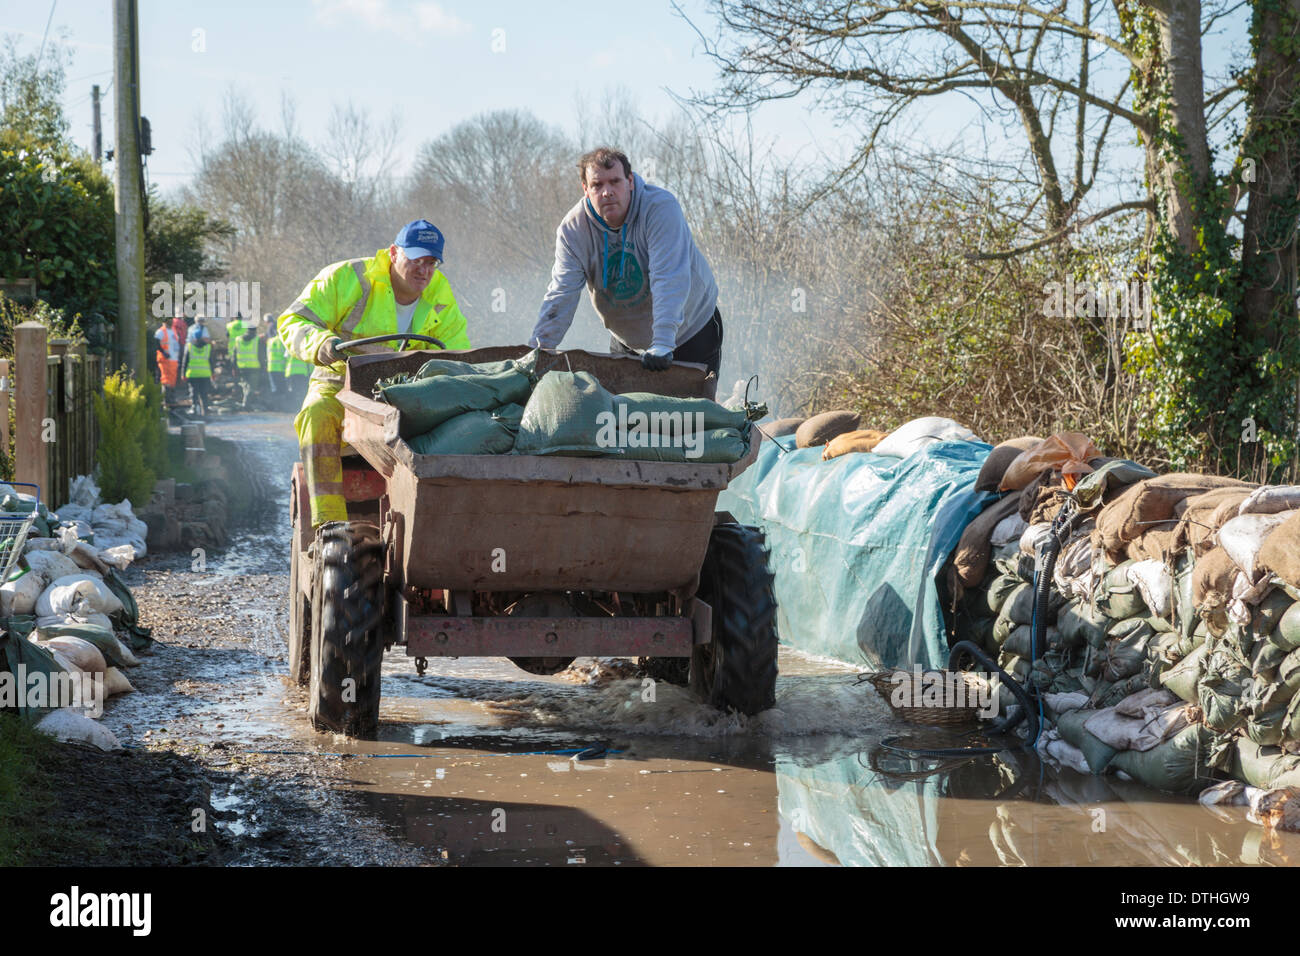 Volunteer aid workers help distribute sandbags in the flooded village of Moorland on the Somerset Levels. - Stock Image